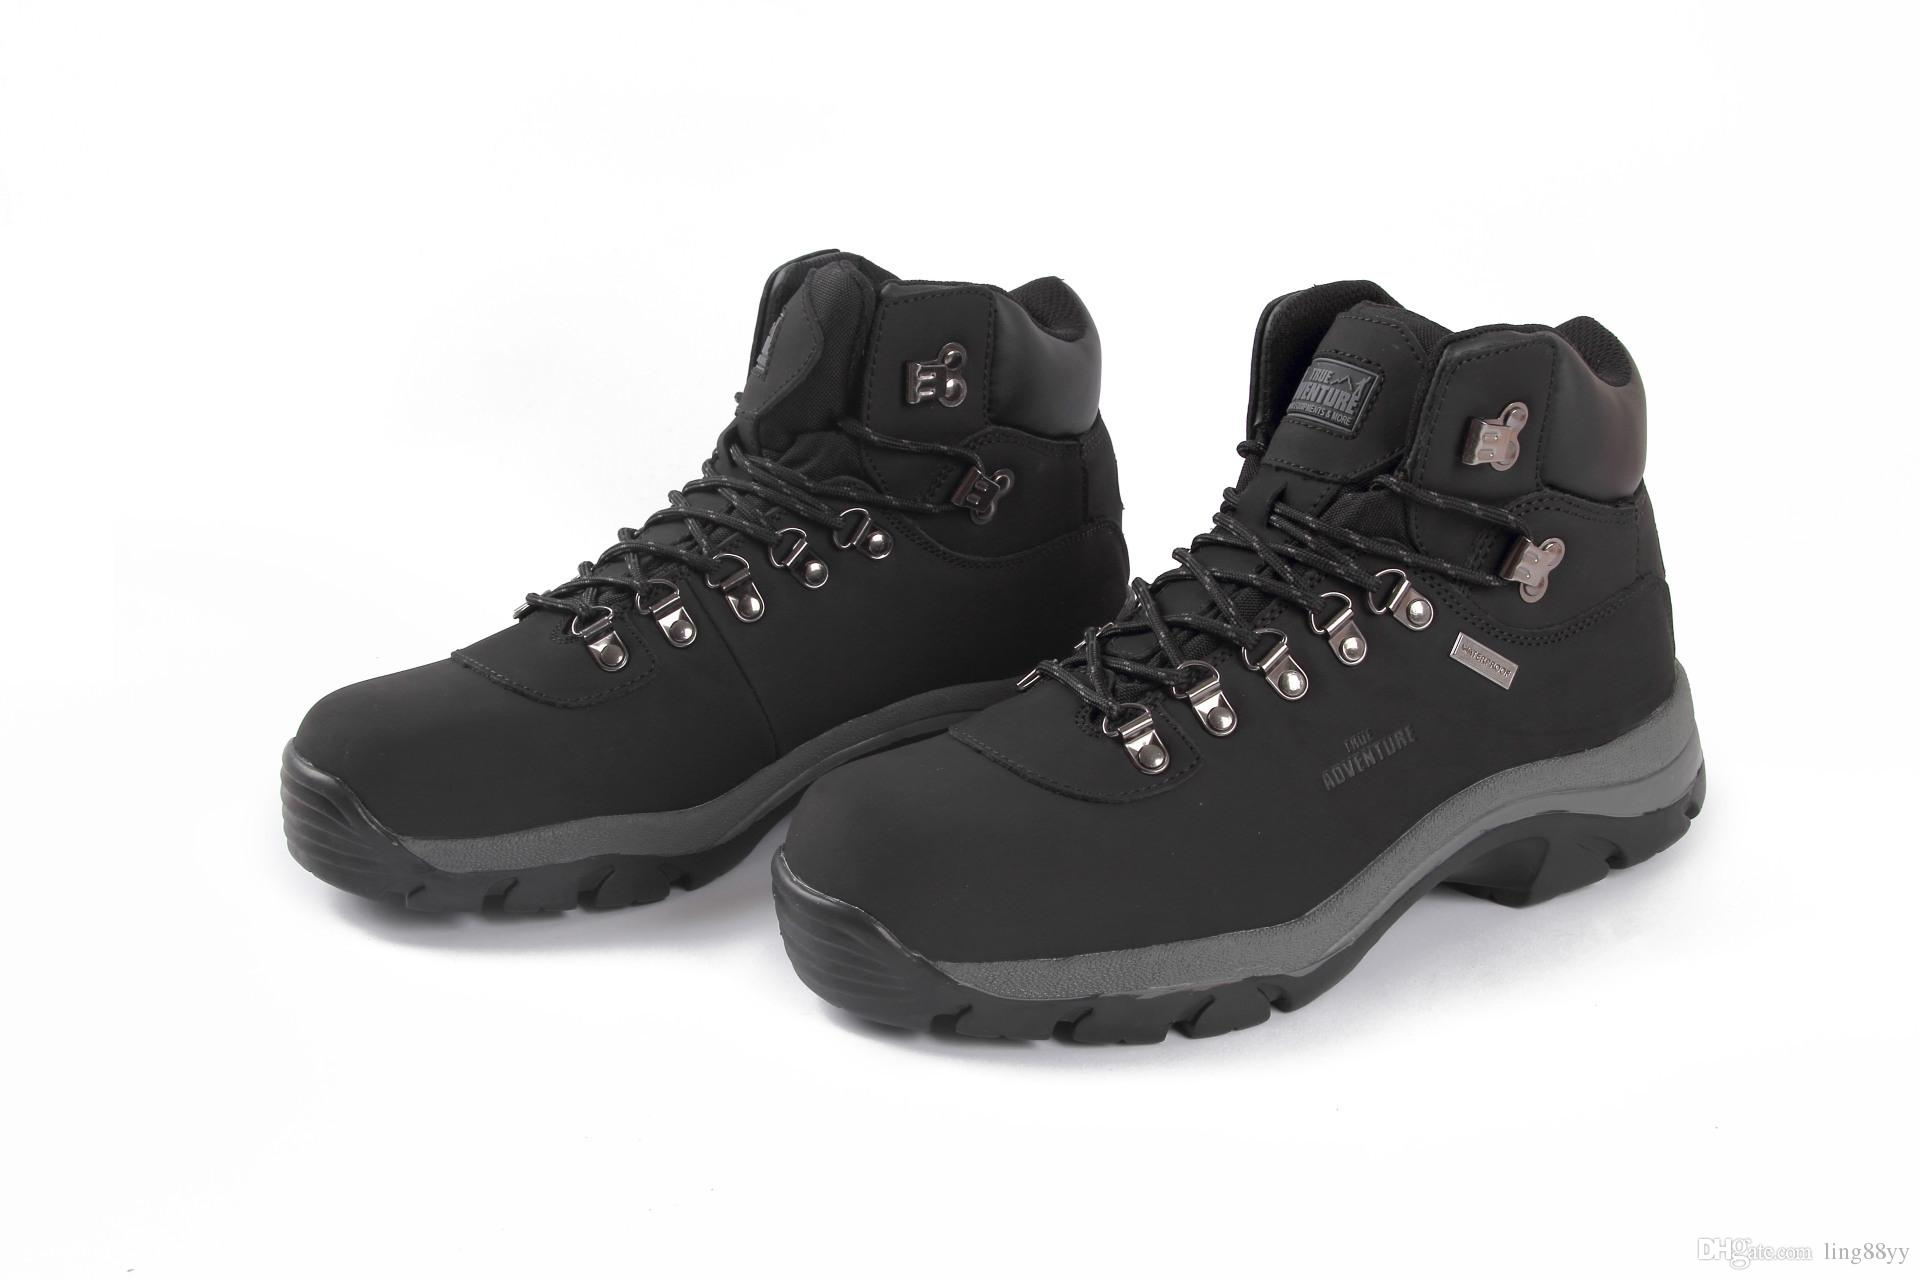 627c1223b9e Winter Men Outdoor Hunting Jungle Genuine Leather Men Shoes Warm Wear  Resisting Boots Hiking Shoes Men Camping Training Boots Black Boots Boots  ...